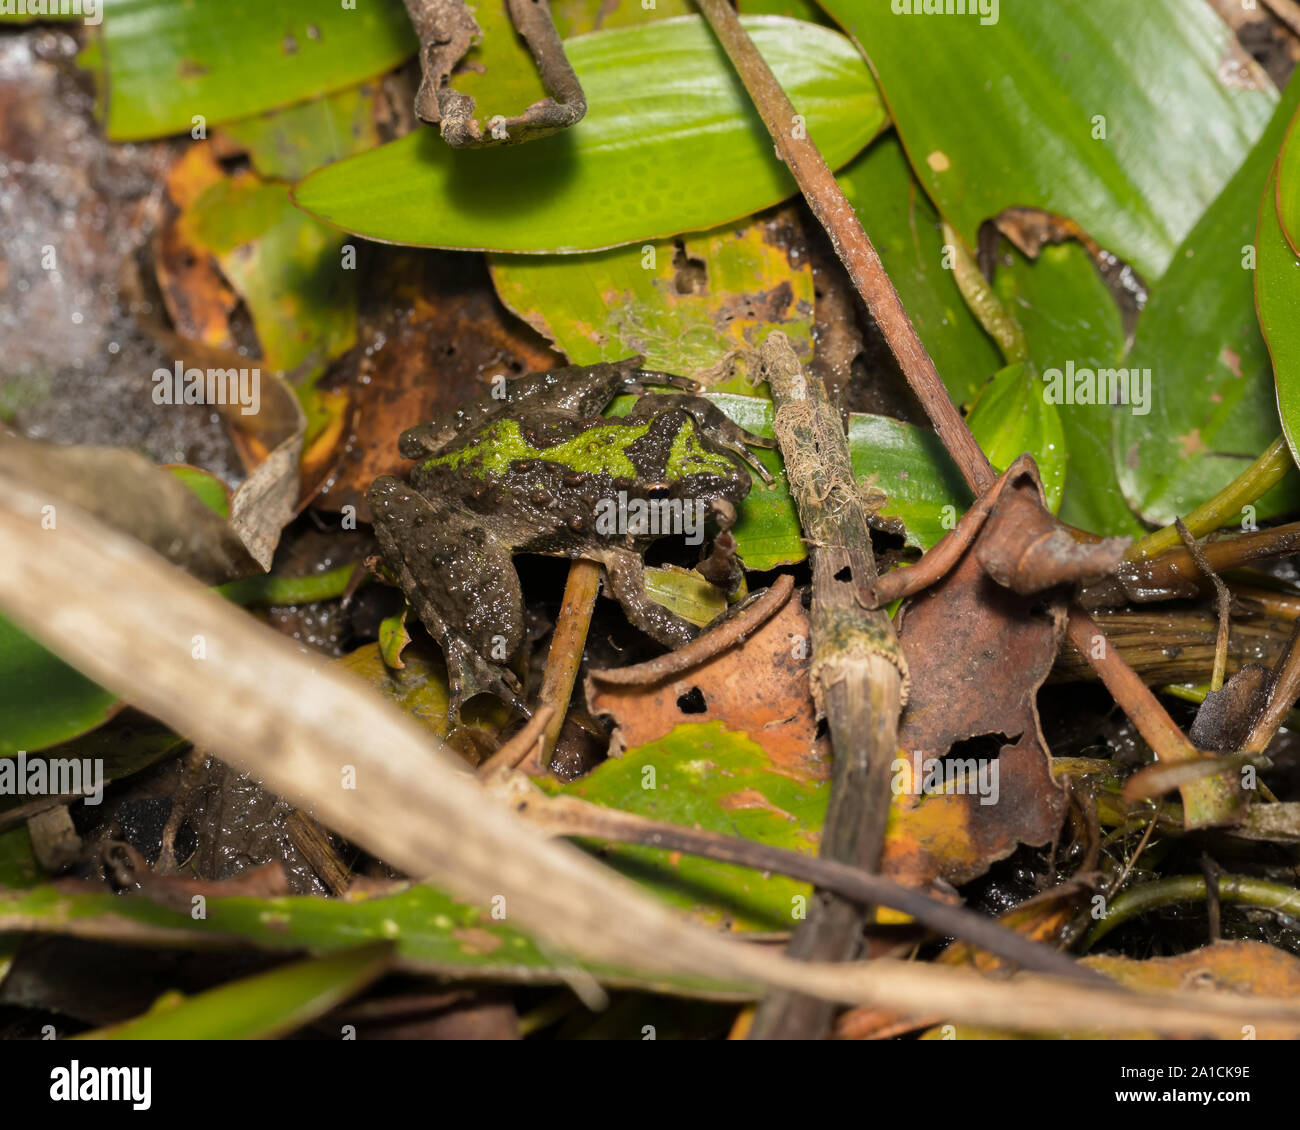 Blanchard's cricket frog, tree frog species, in its natural environment of vegetation on the shore line of a pond. Stock Photo